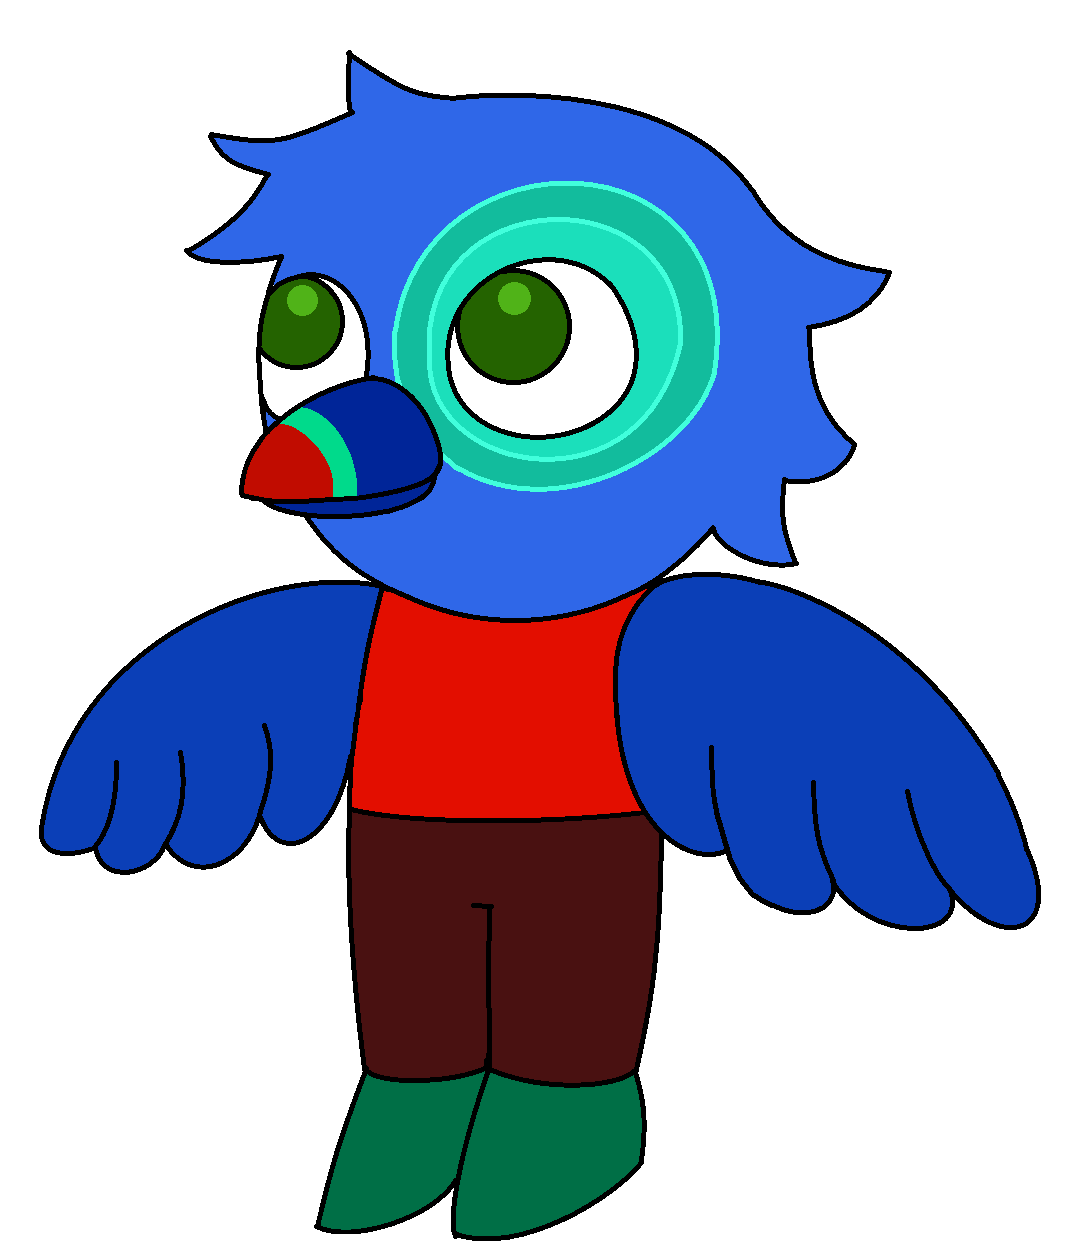 Bluebird The Steven Universe Mars Au Wikia Fandom Mix & match this pants with other items to create an avatar that is unique to you! the steven universe mars au wikia